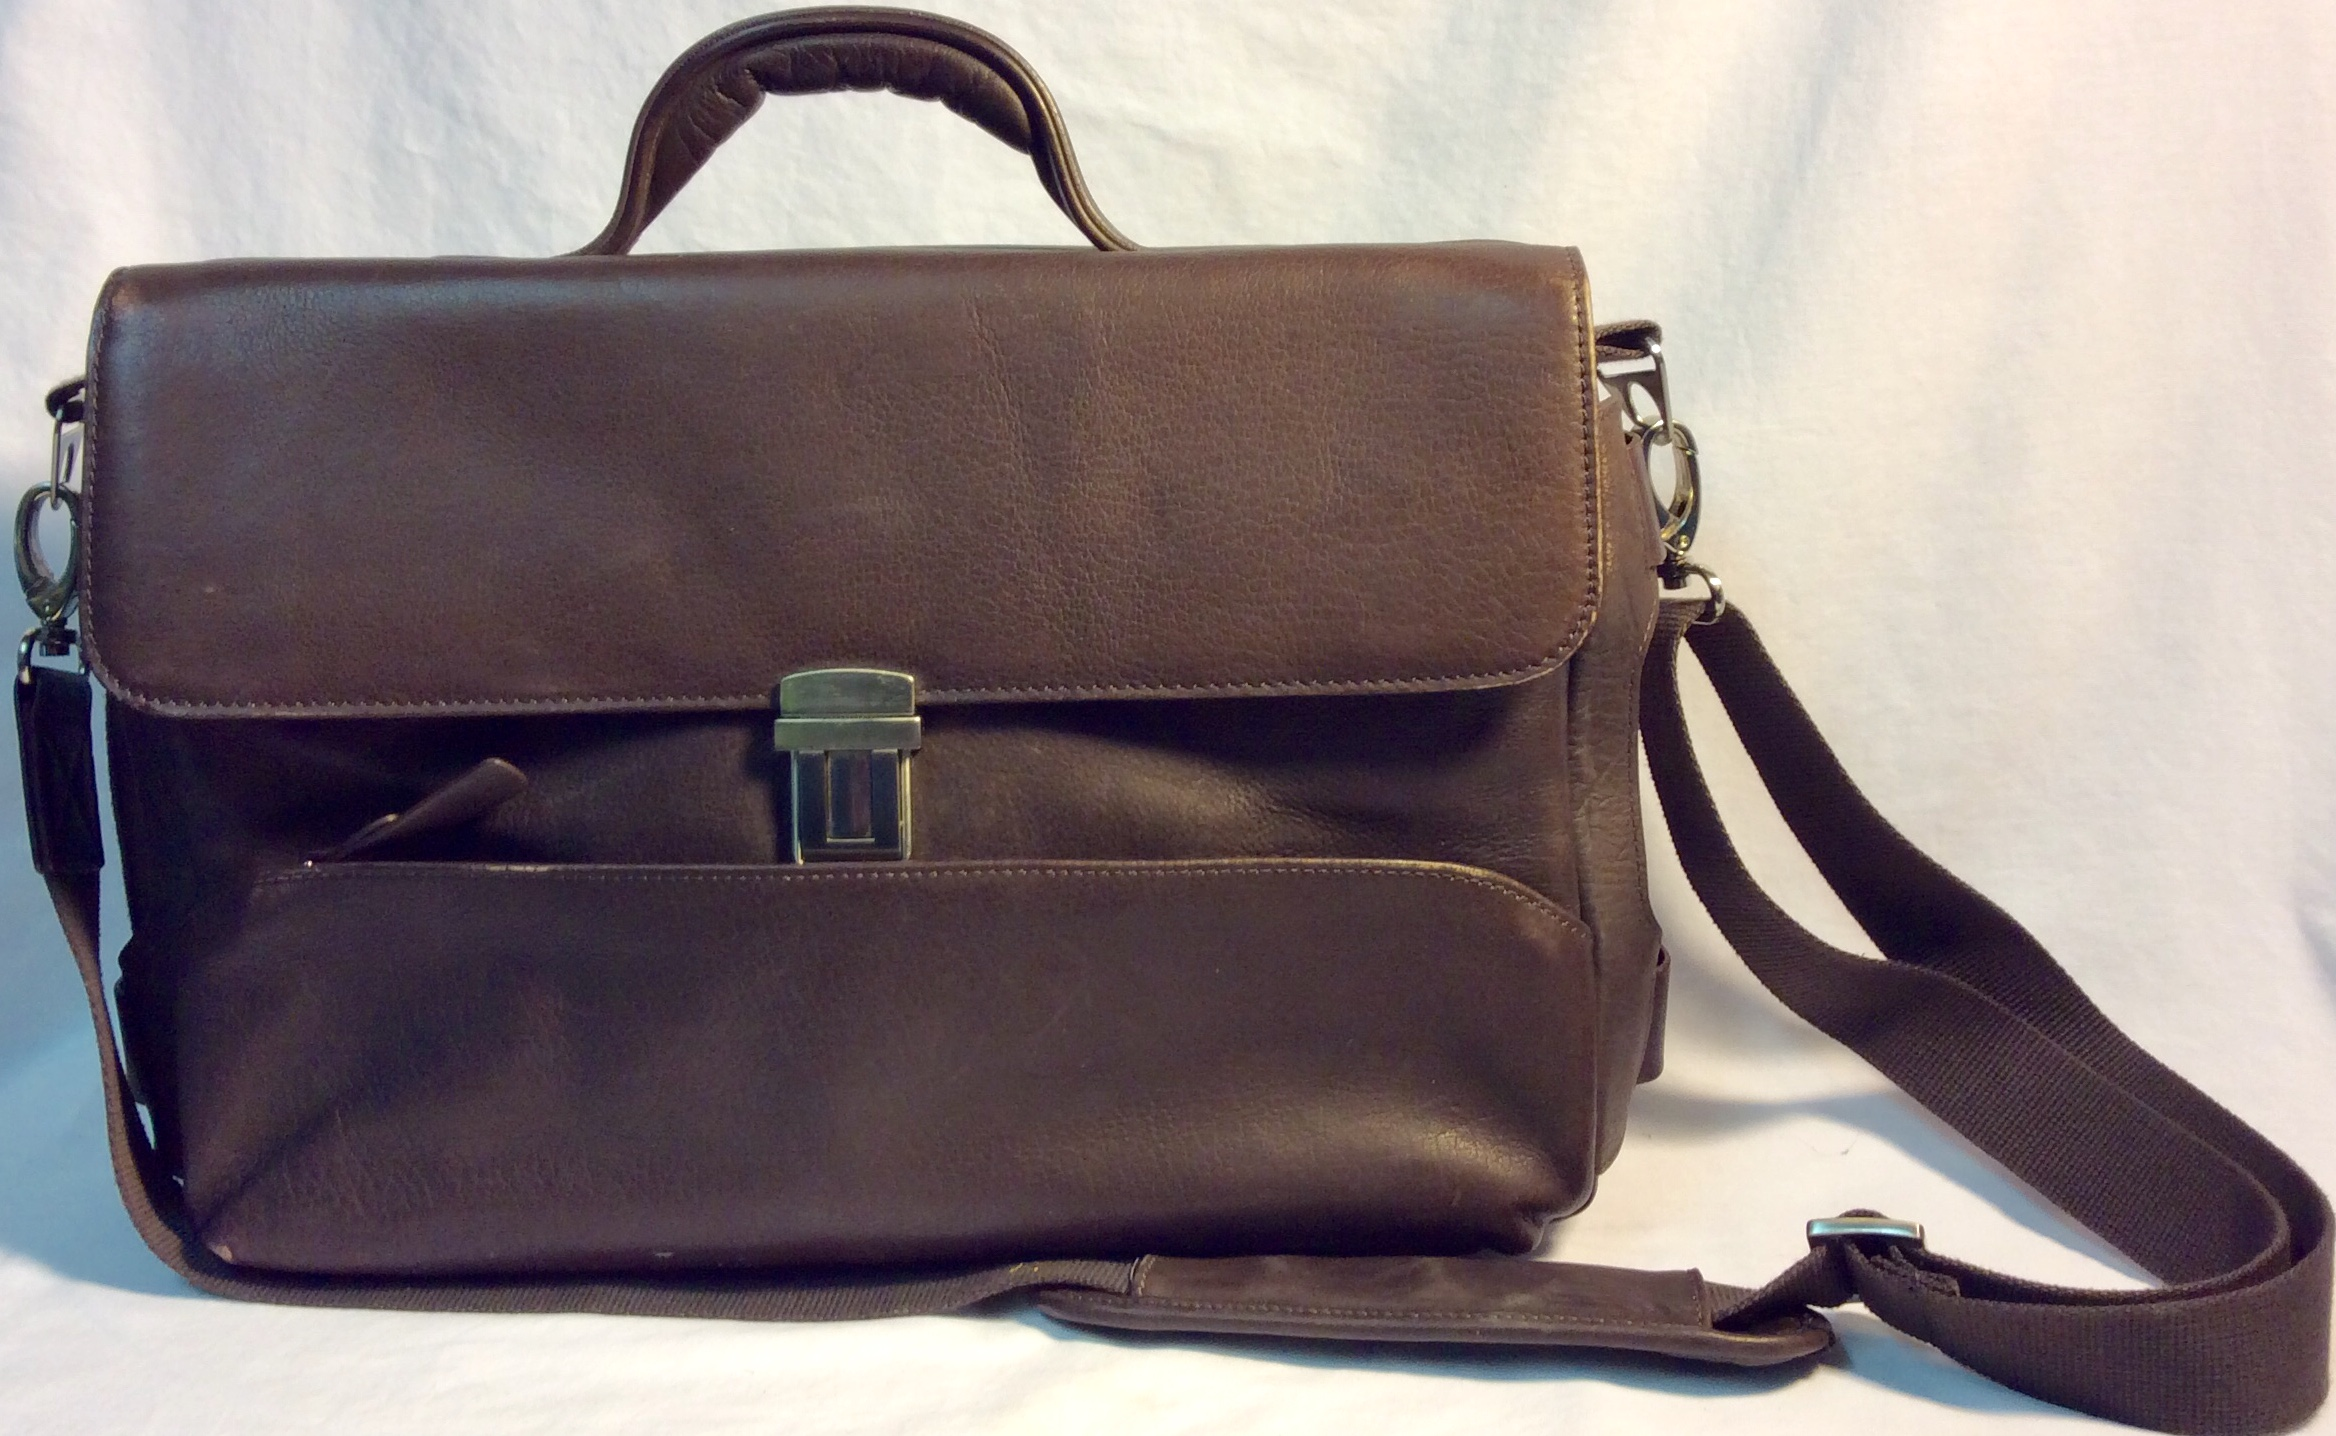 Danier Dark brown leather with silver clasp